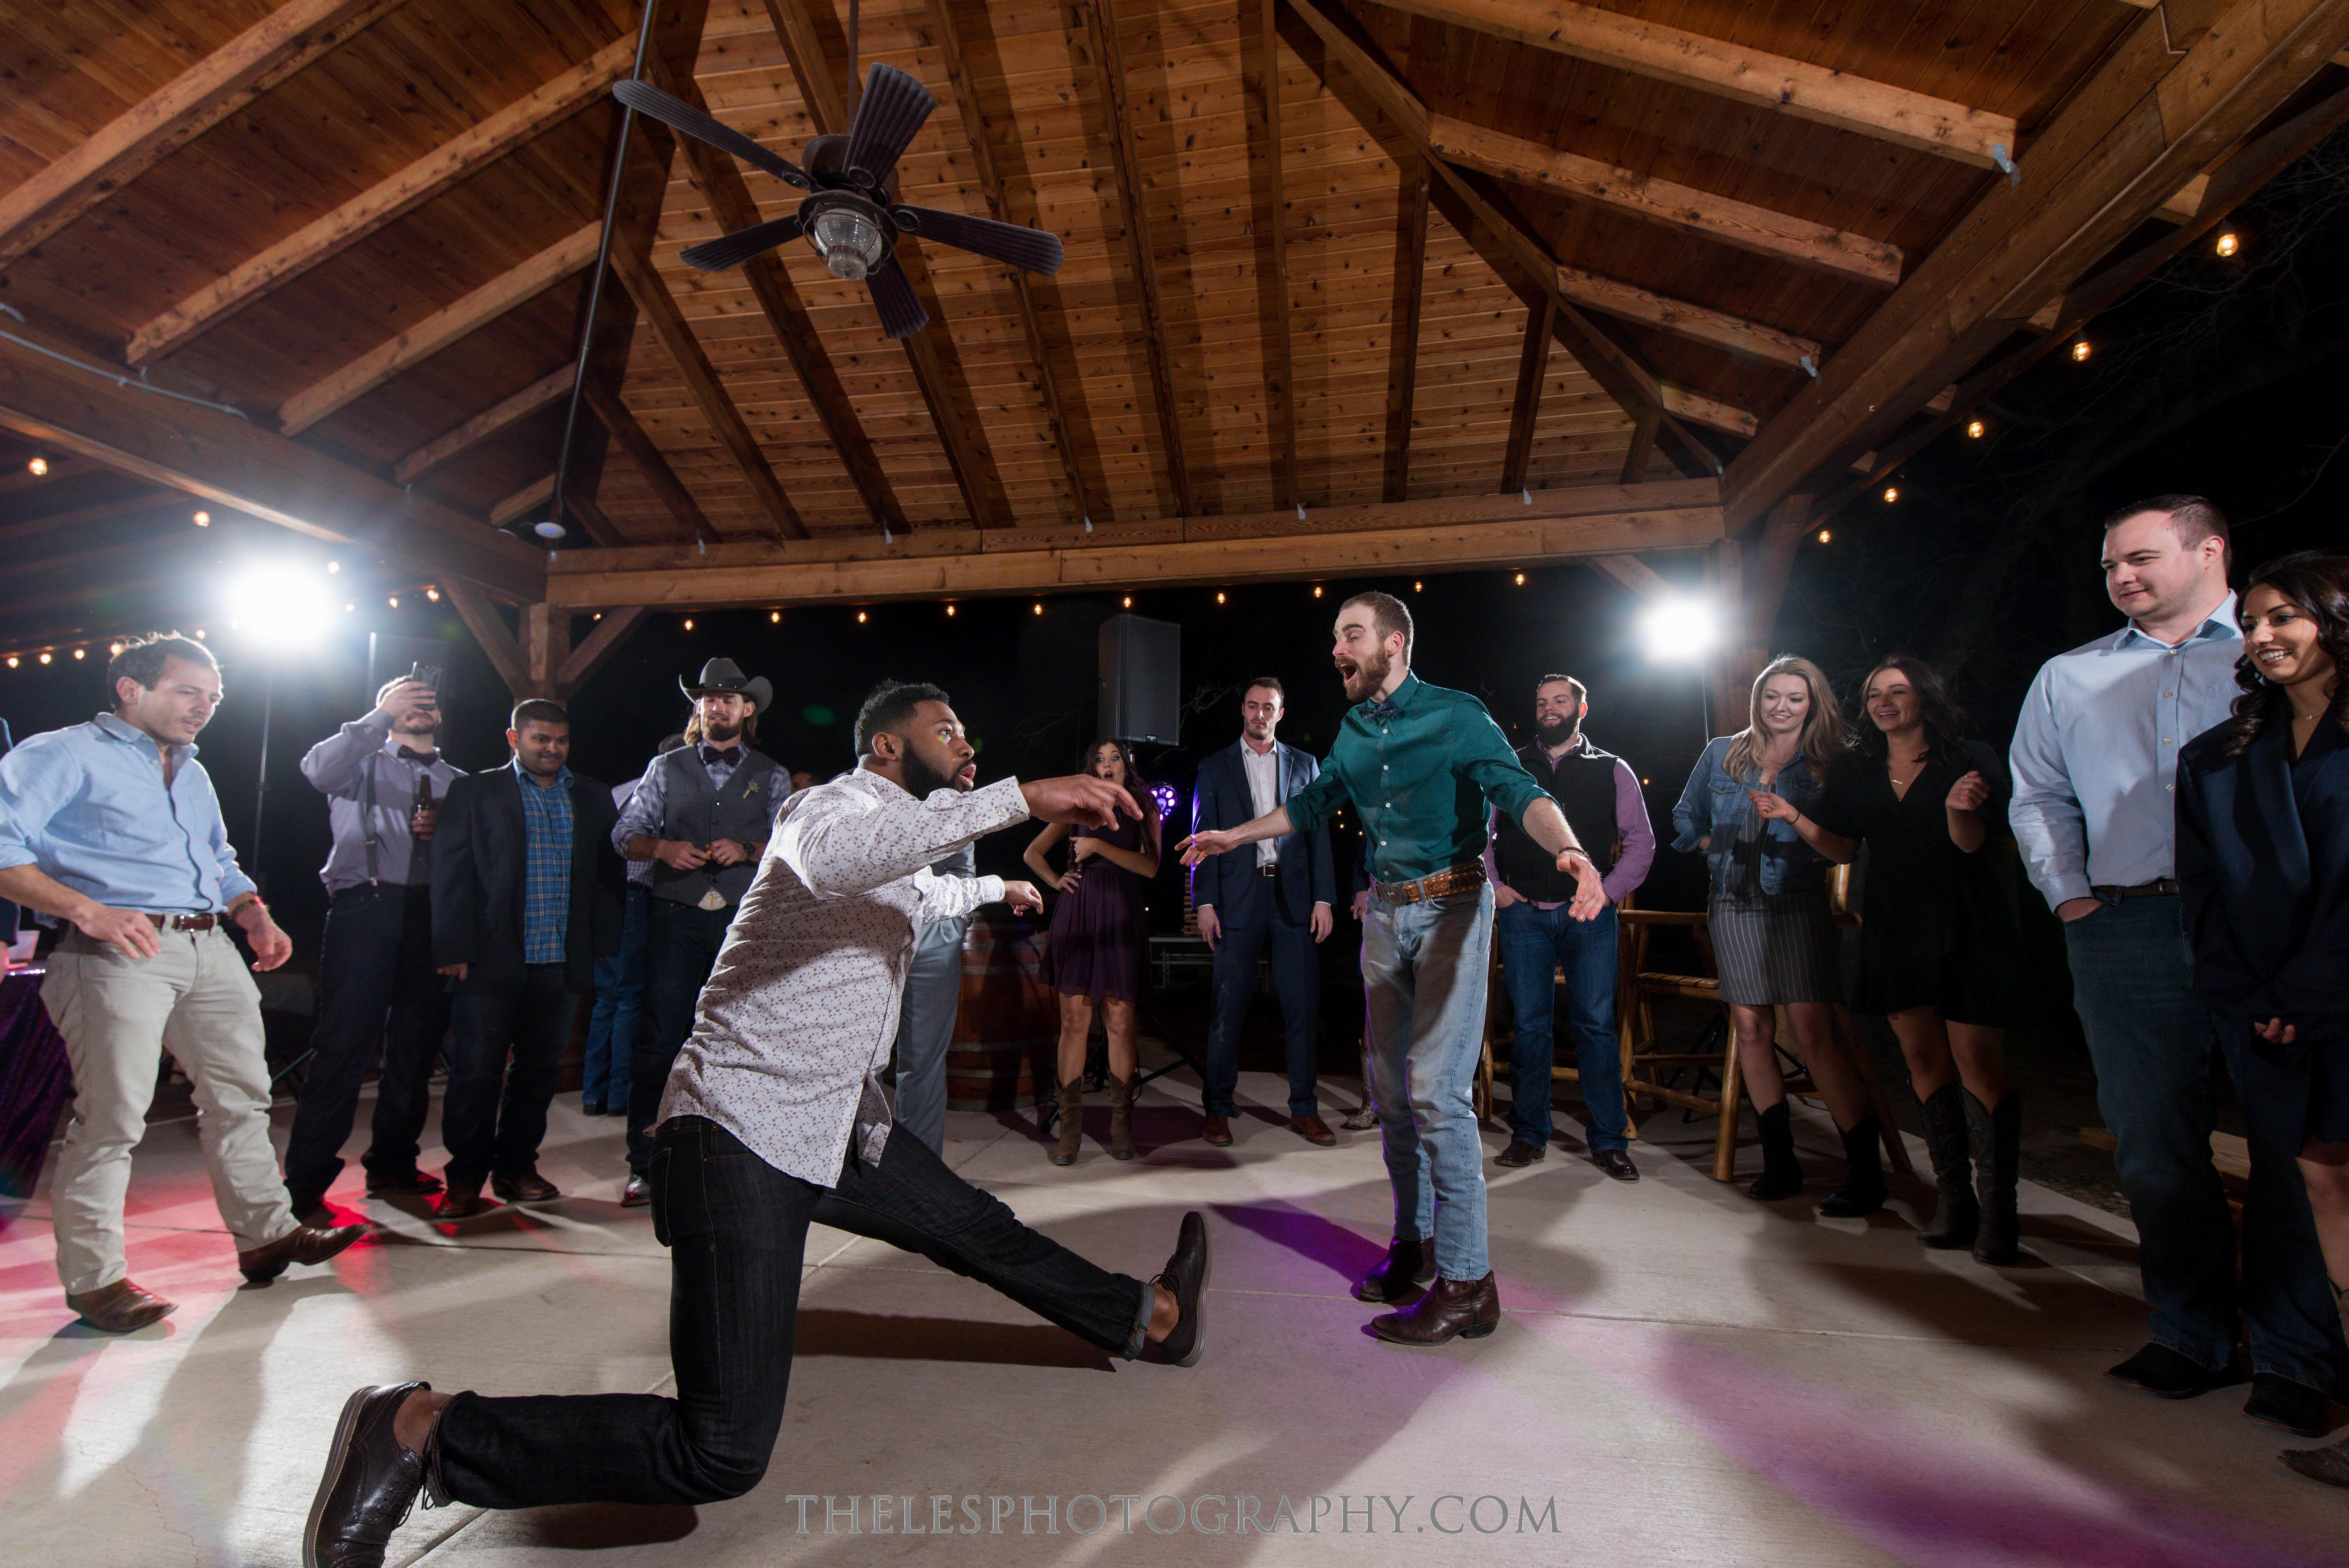 128 Dallas Wedding Photography - Photographer - The Les Photography - Fort Country Memories Wedding